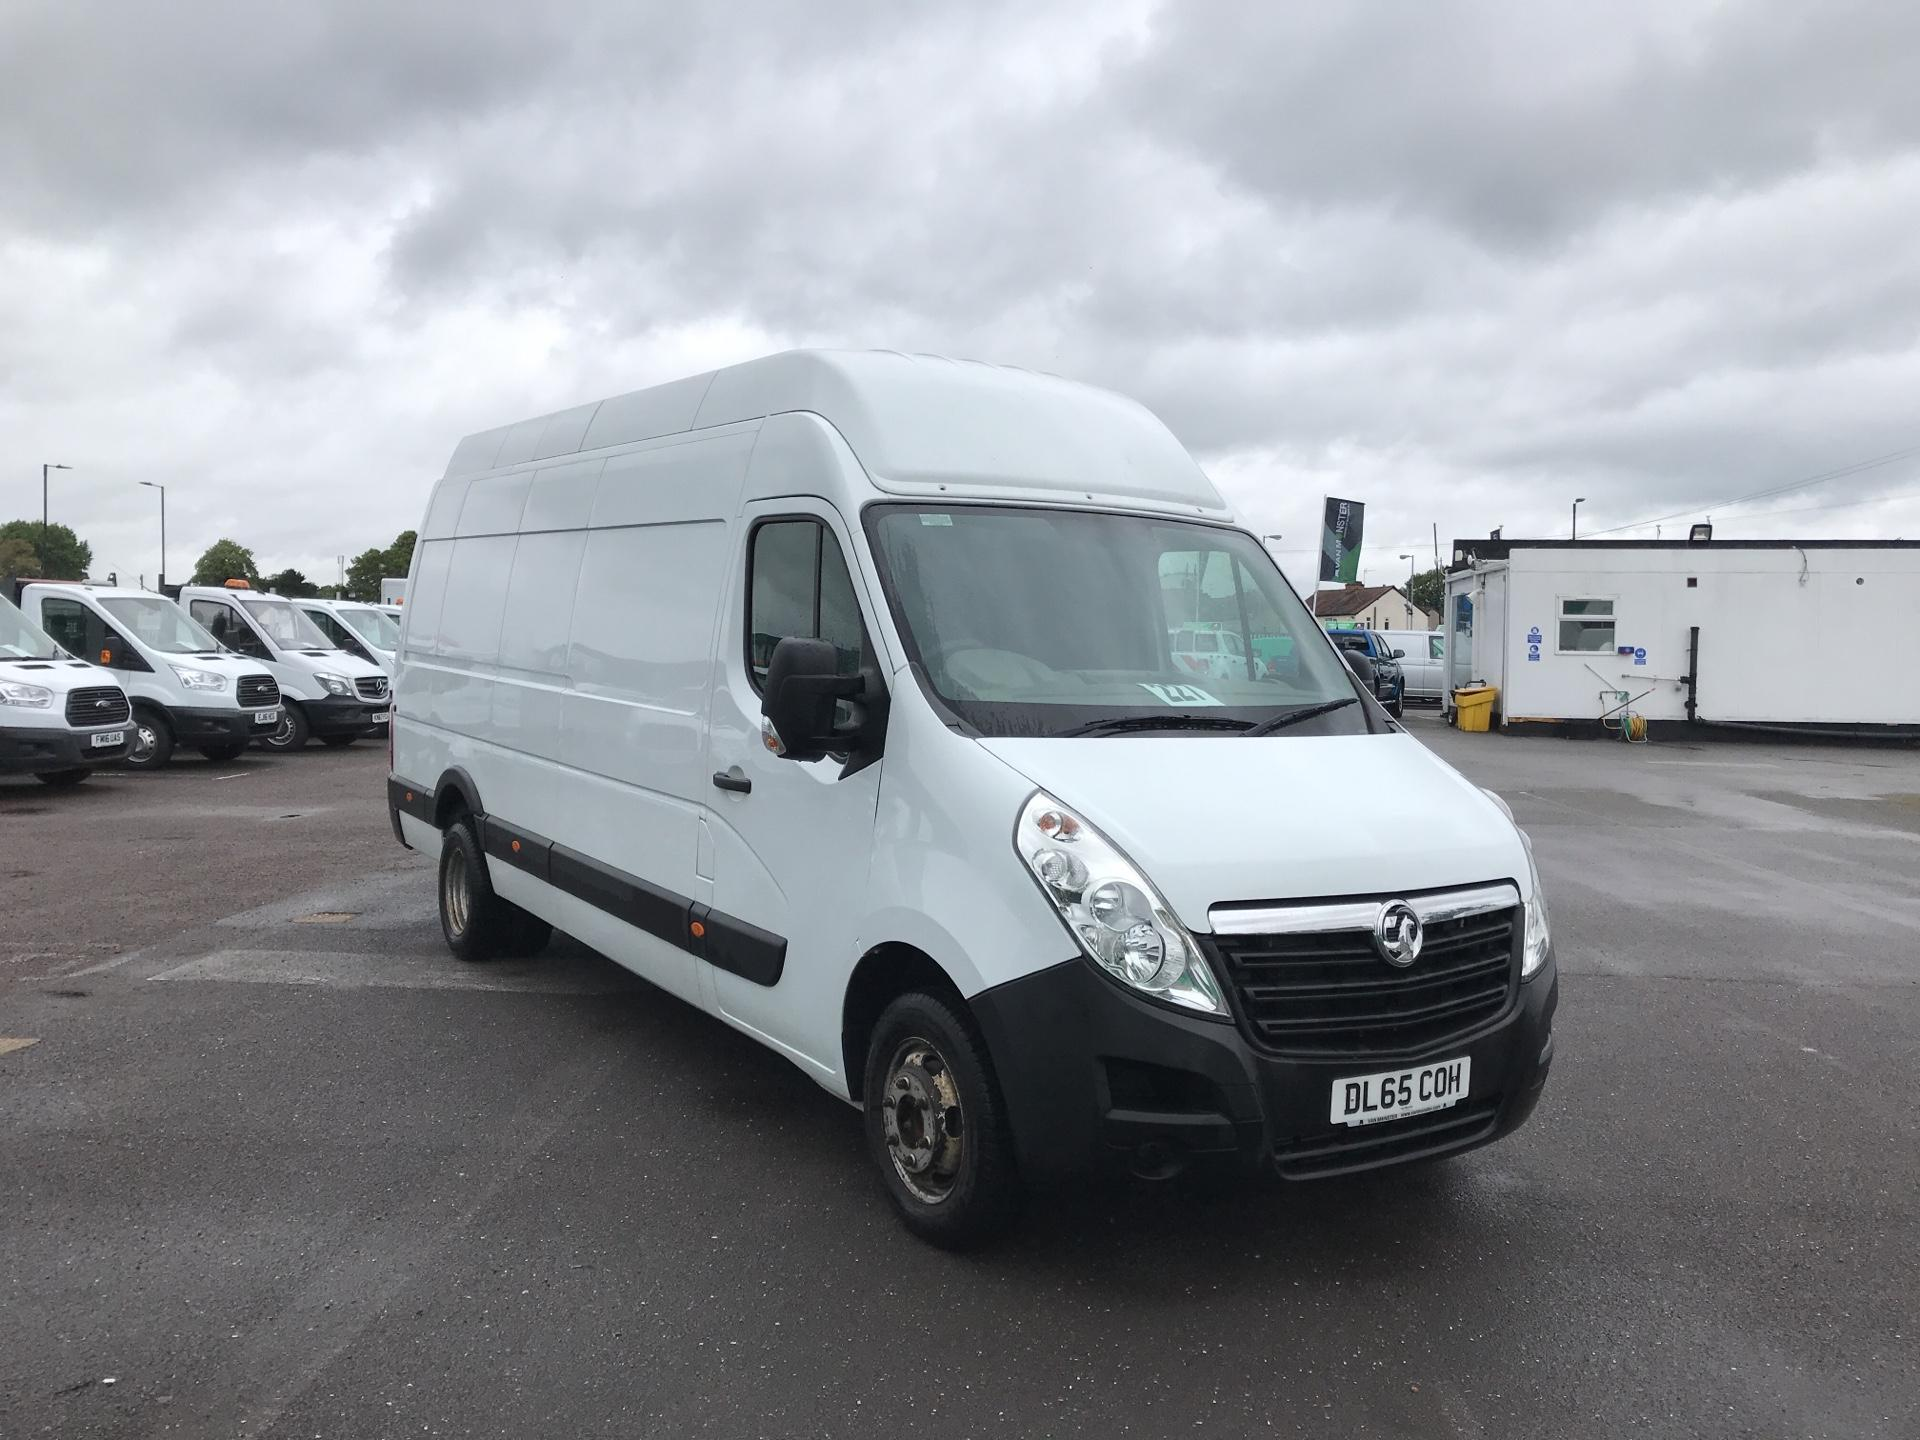 2015 Vauxhall Movano  35 L4 H3 125PS EURO 5 *VALUE RANGE VEHICLE CONDITION REFLECTED IN PRICE* (DL65COH)